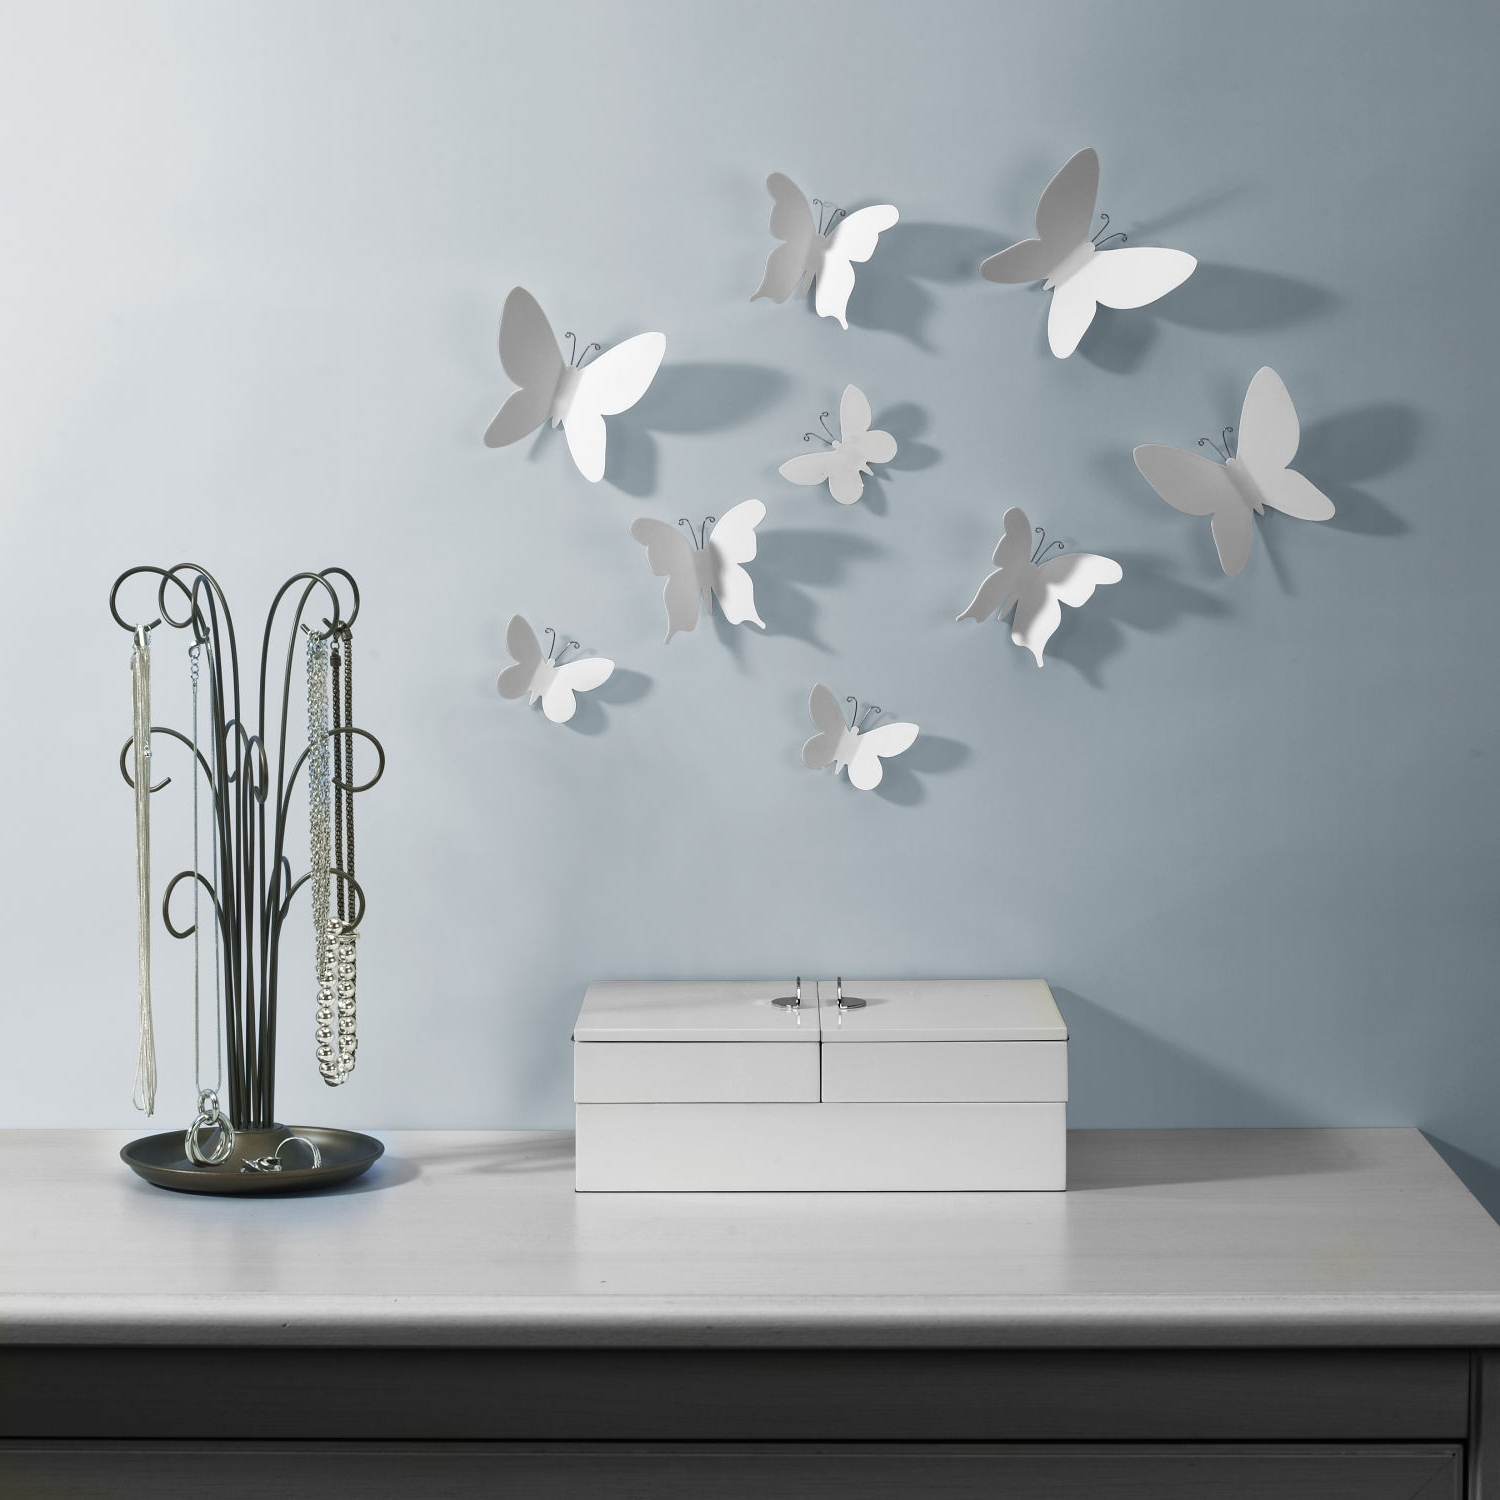 Well Known Umbra 3D Wall Art Throughout Umbra Mariposa Wall Decor • Walls Decor (View 15 of 15)